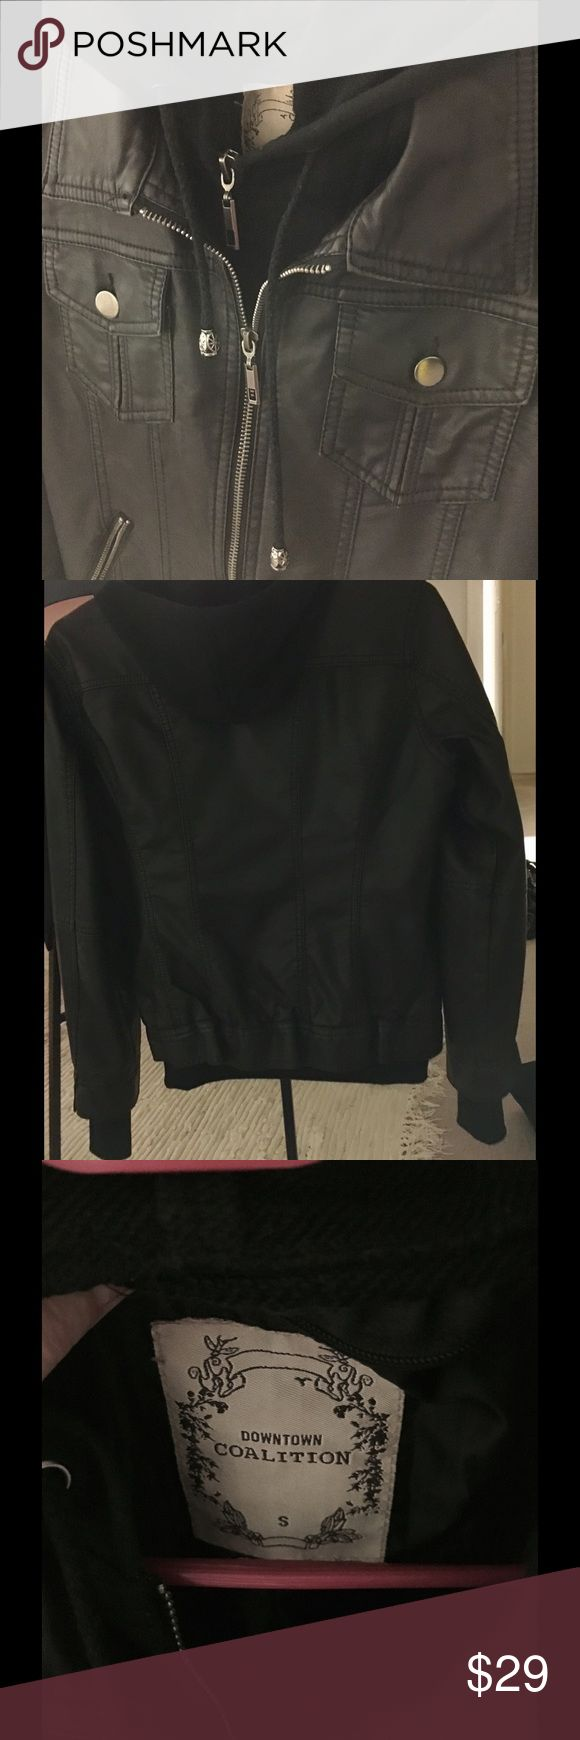 """Women's Brown Leather Jacket Hoodie Small Brown faux leather jacket with a zip in or out hoodie. In very good condition! Purchased from a boutique. If you have any questions please ask! 18"""" armpit to armpit - 23"""" shoulder to bottom hem - 26"""" sleeve length Downtown Coalition Jackets & Coats Utility Jackets"""